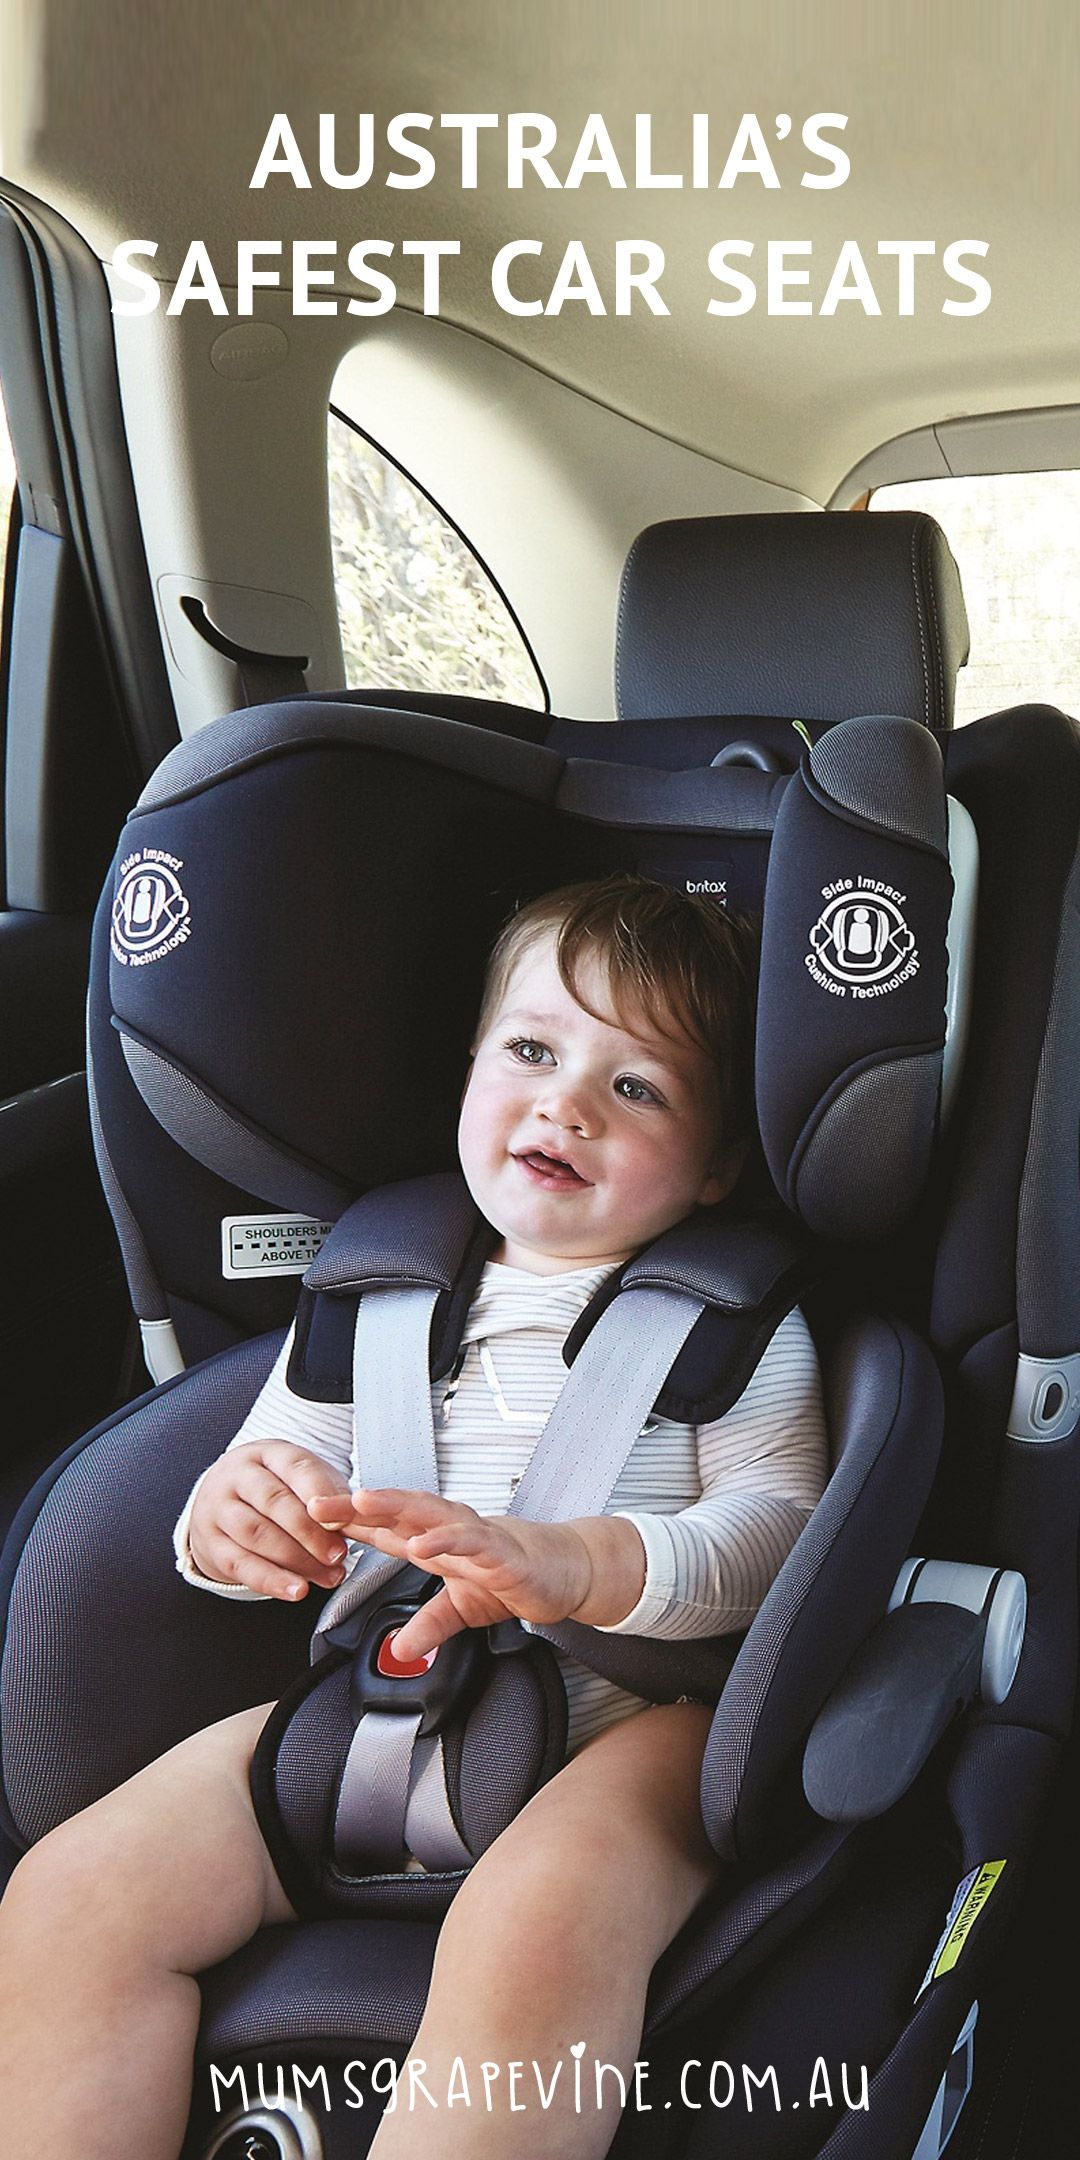 Baby Capsule Convertible Car Seat Motoring Organisation Reveals Australia S Safest Car Seats